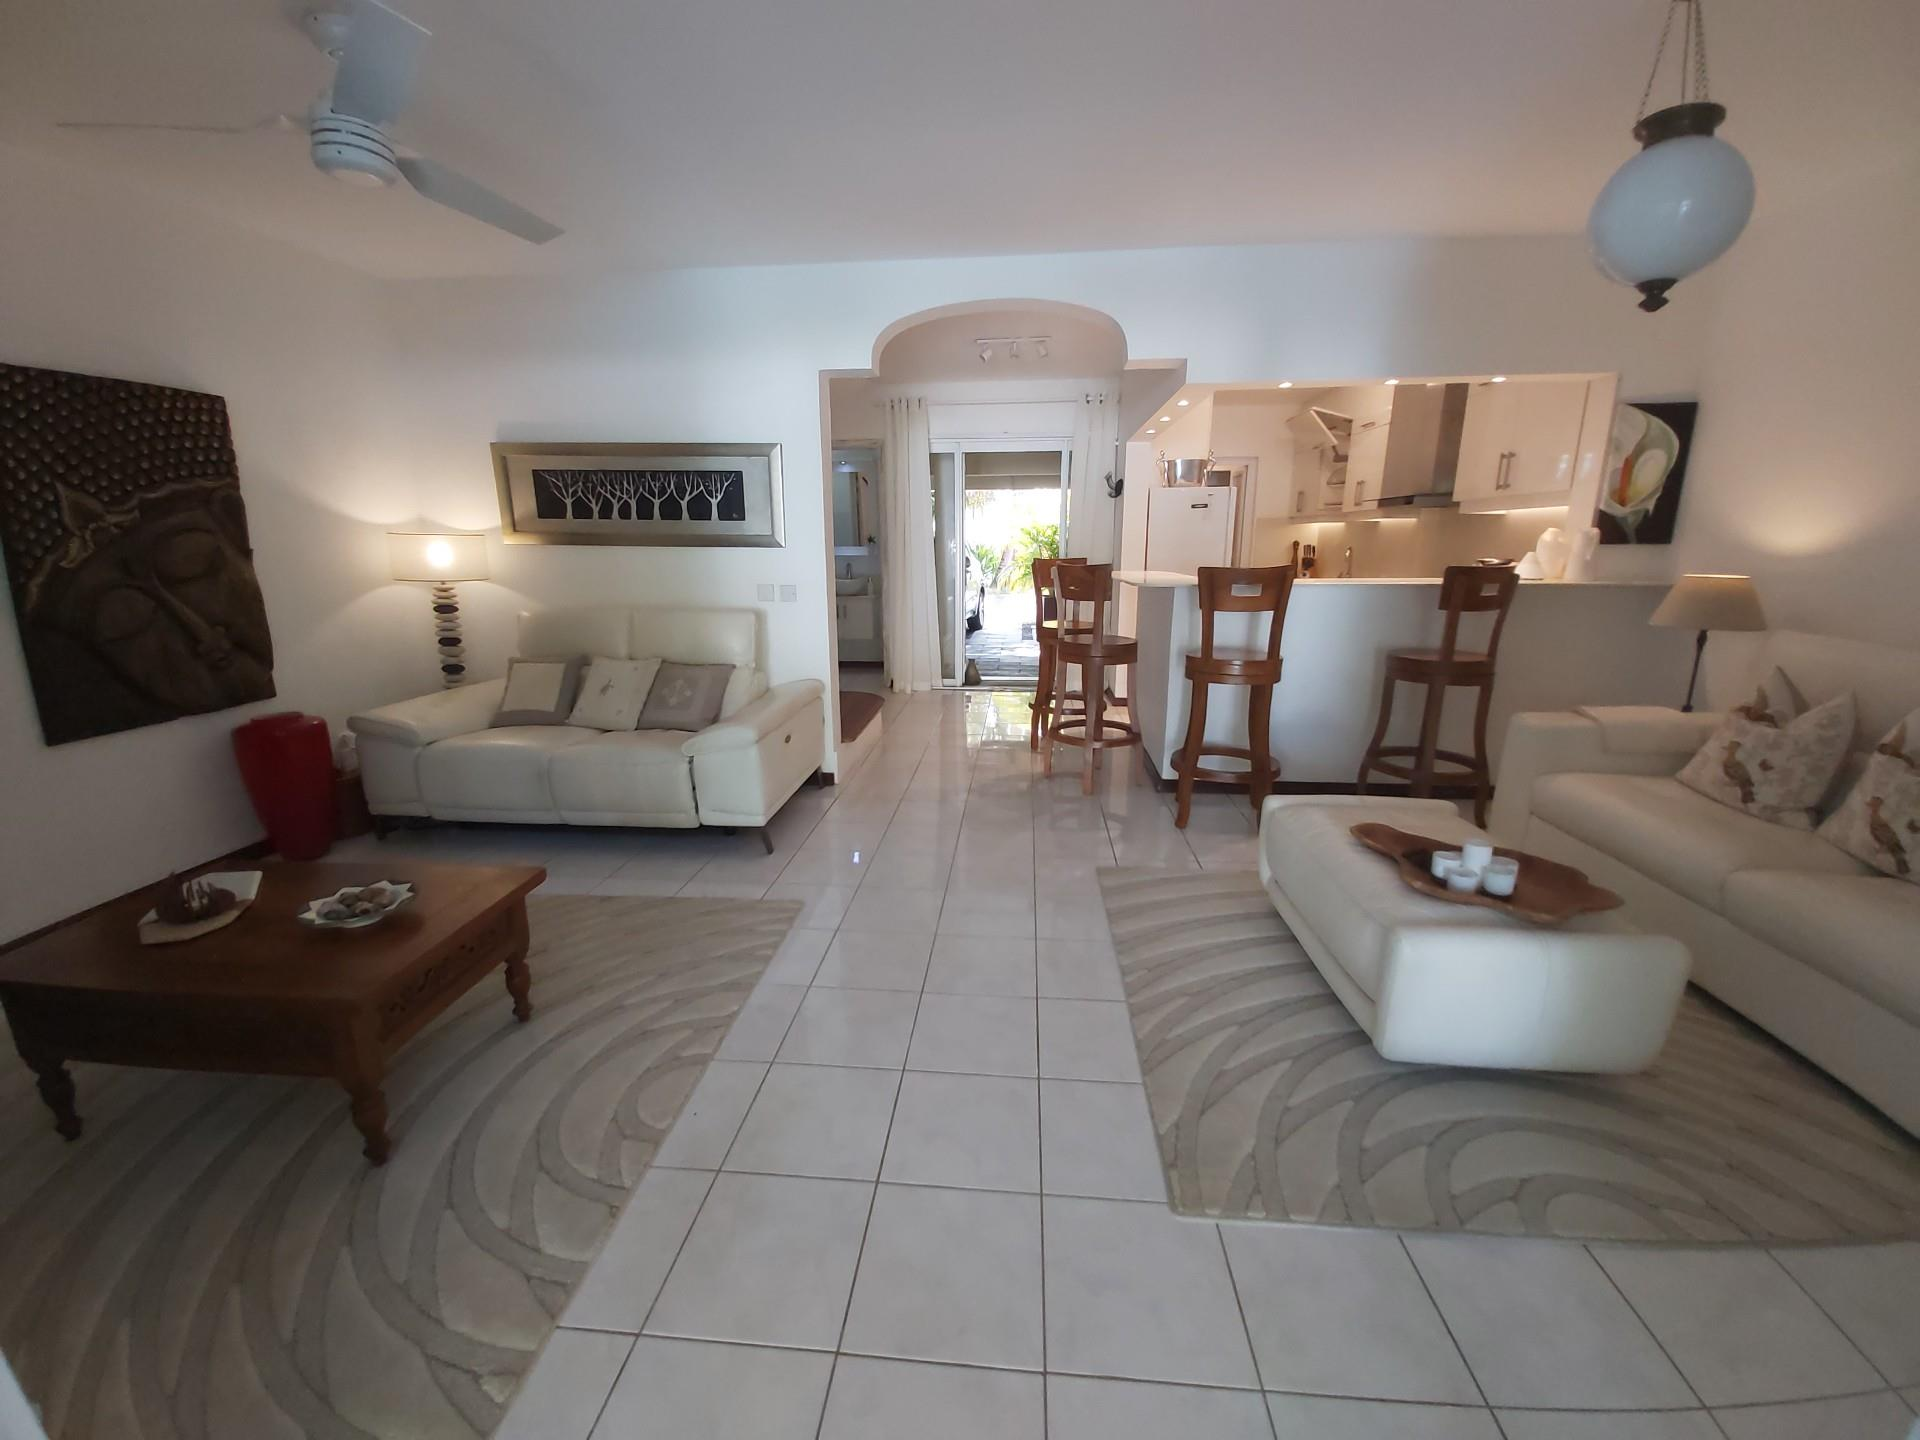 3 Bedroom House For Sale in Cap Malheureux